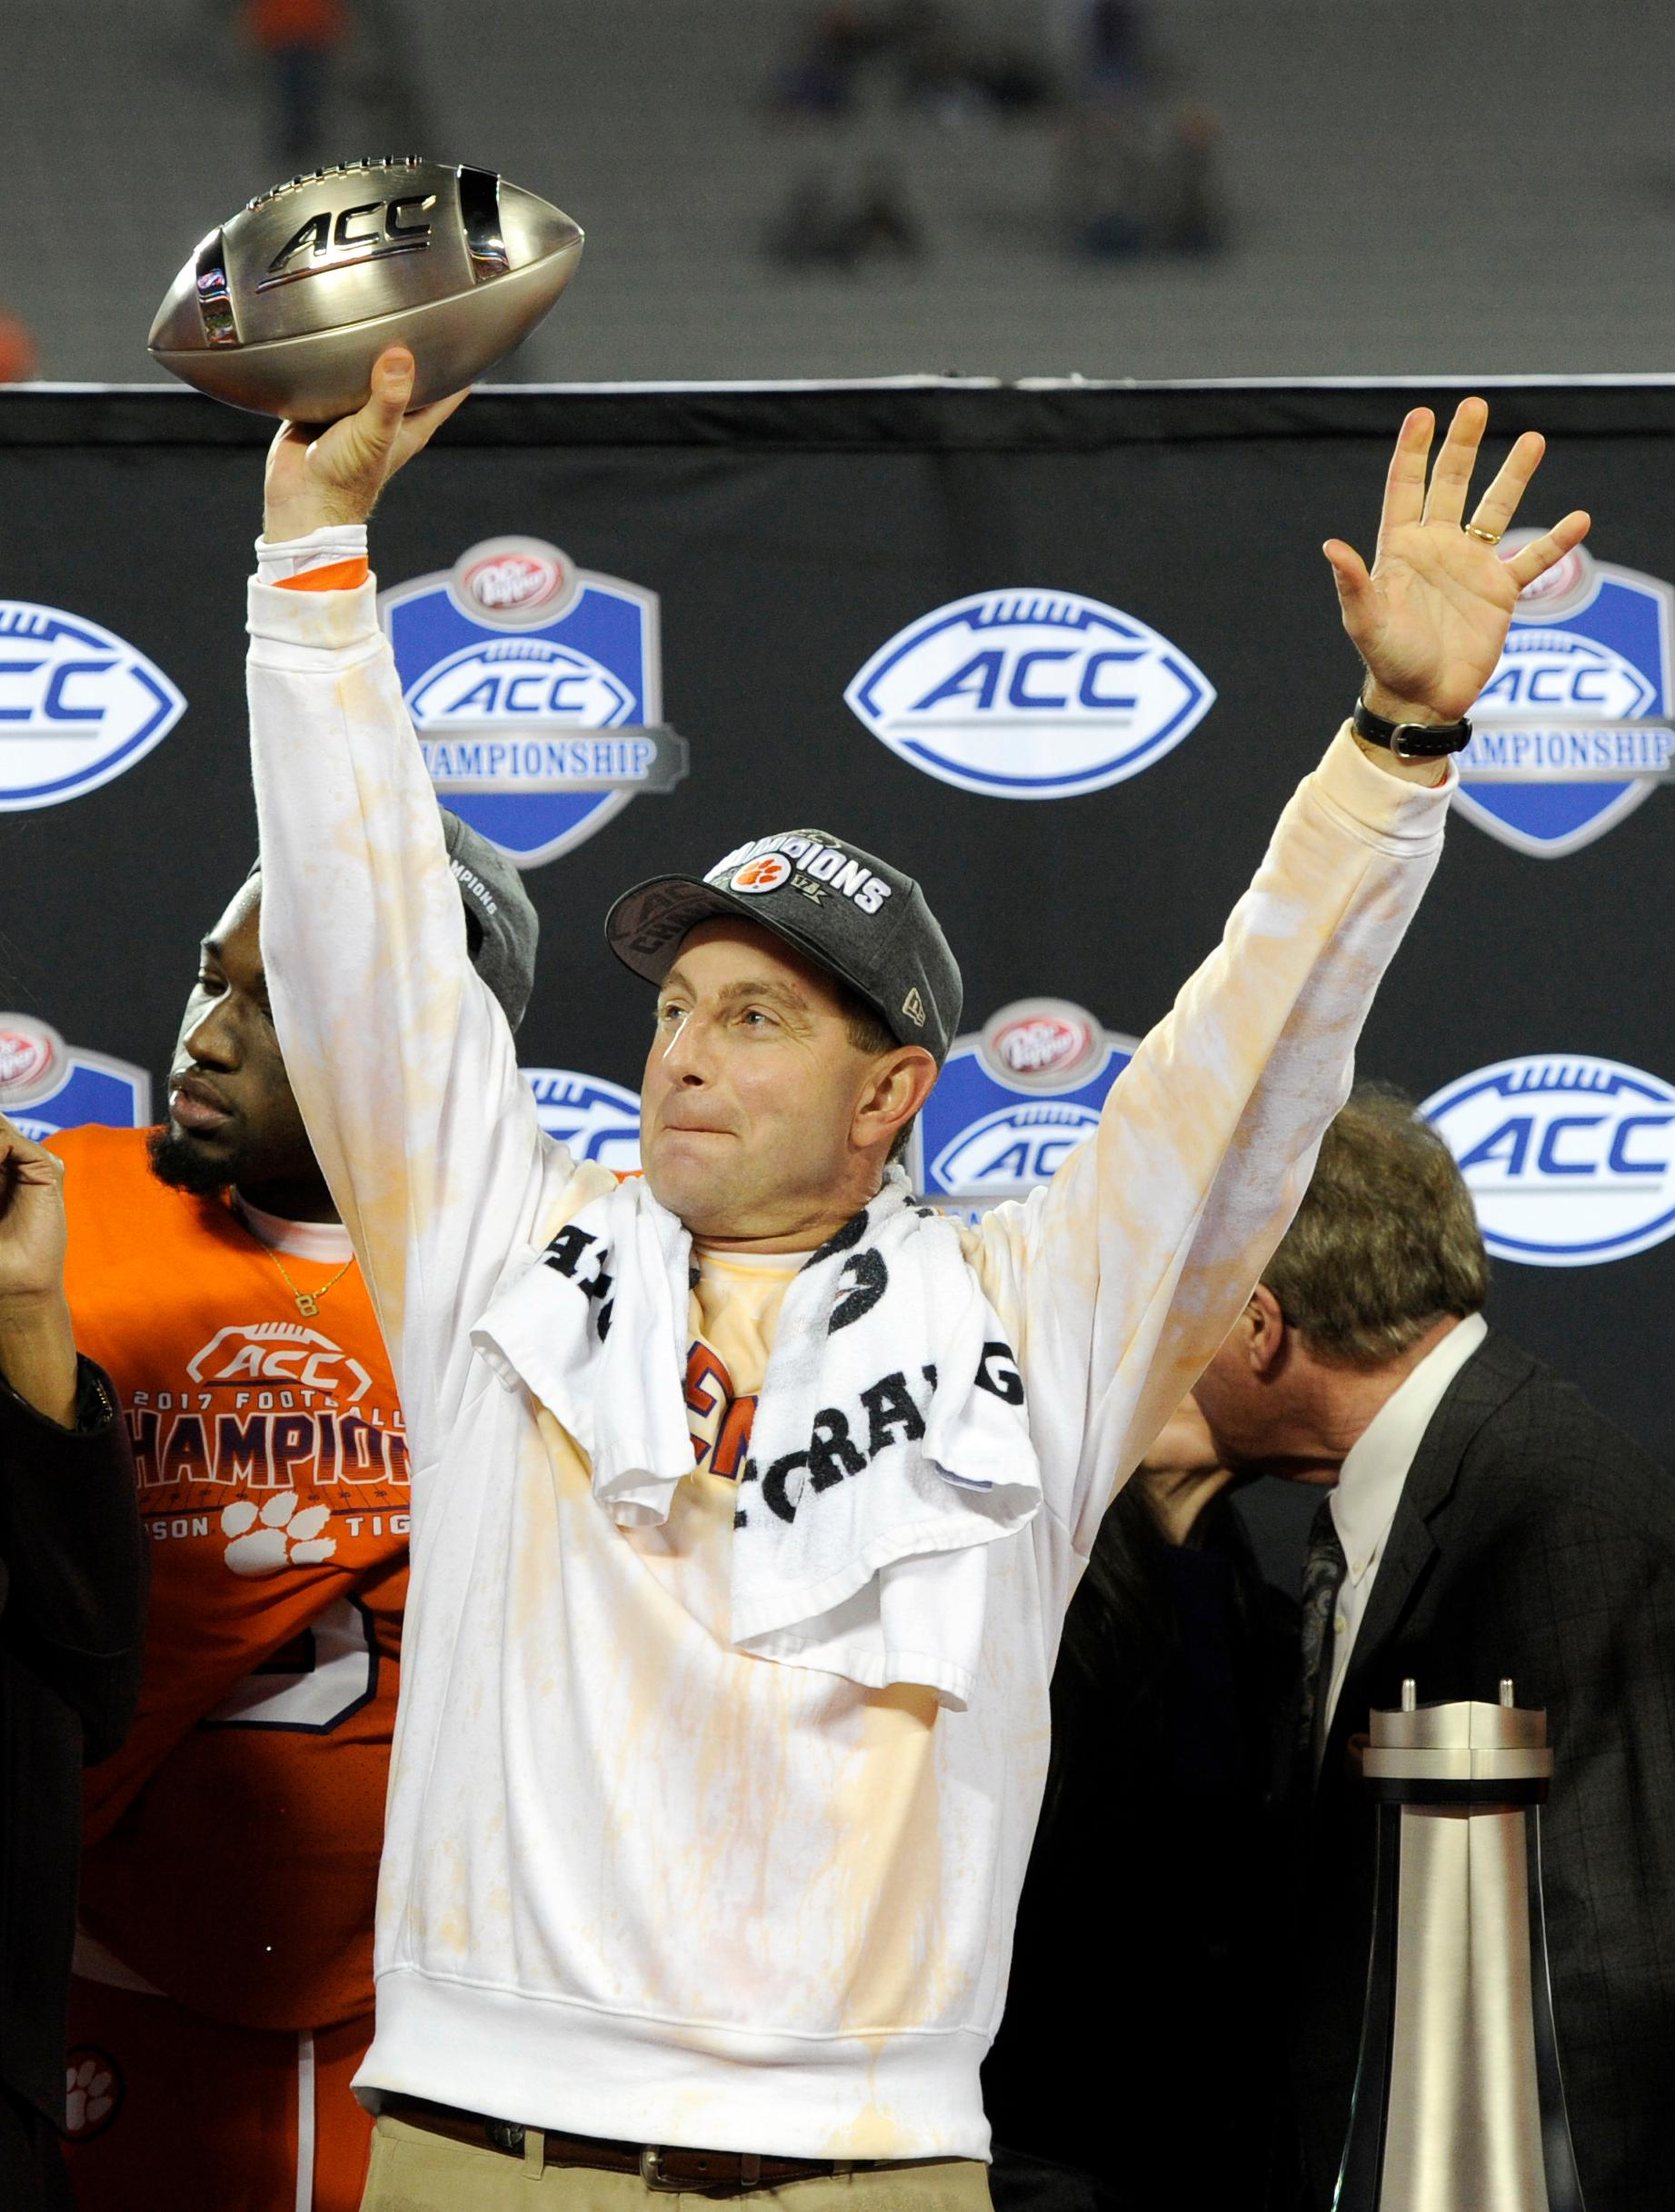 Clemson head coach Dabo Swinney celebrates with the trophy after Clemson's win over Miami in the Atlantic Coast Conference championship NCAA college football game in Charlotte, N.C., Saturday, Dec. 2, 2017. (AP Photo/Mike McCarn)